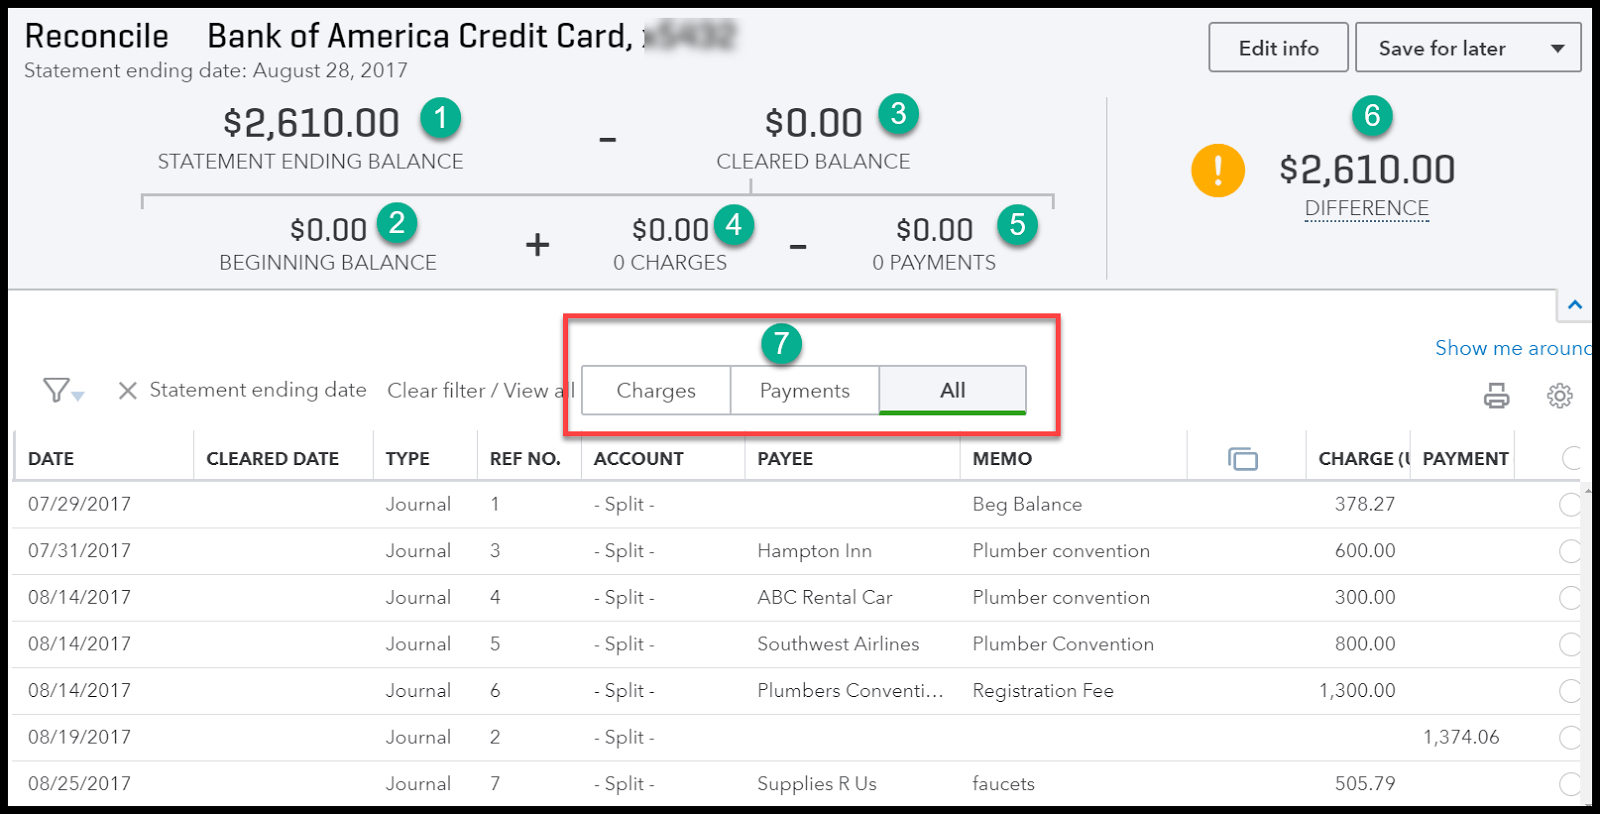 Match Transactions for the Credit Card Reconciliation in QuickBooks Online